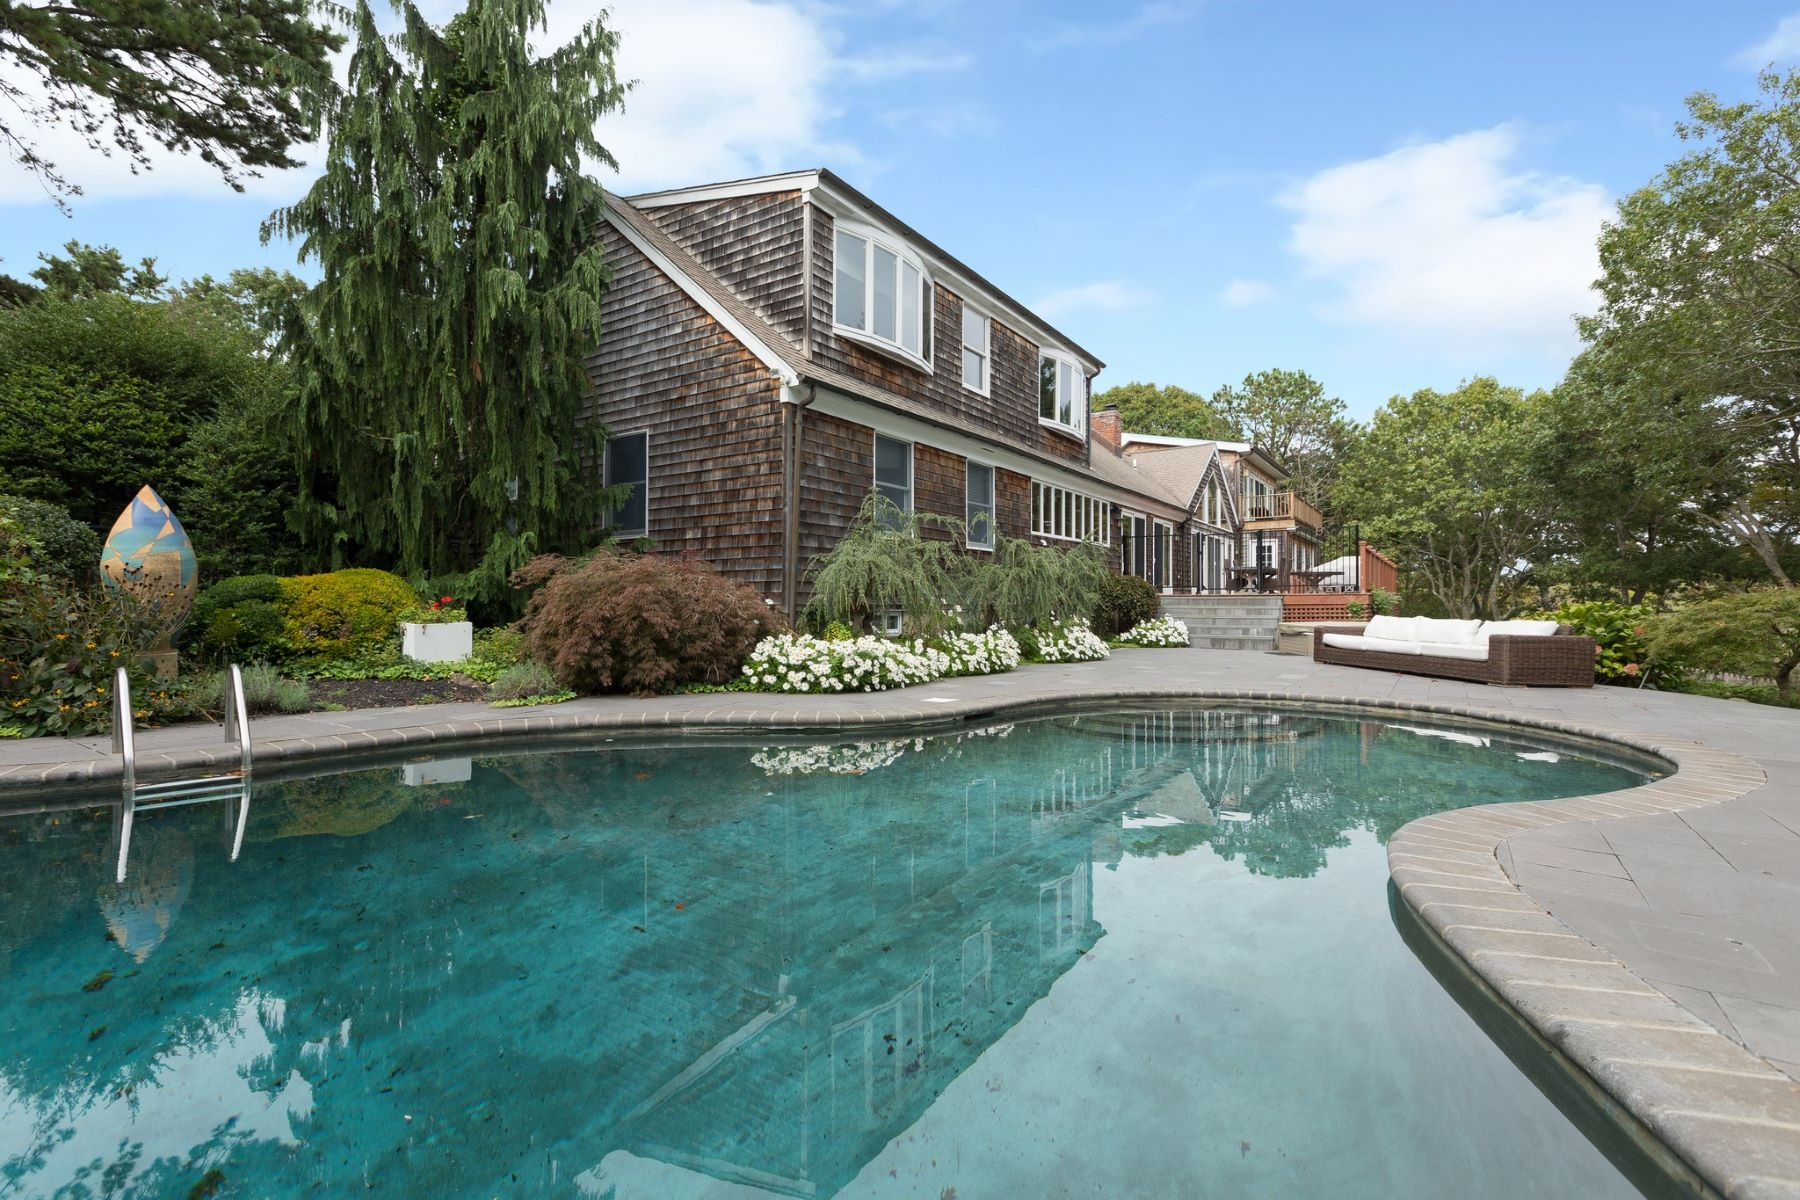 Single Family Home for Active at Westhampton Bch 87 Brook Rd Westhampton Beach, New York 11978 United States